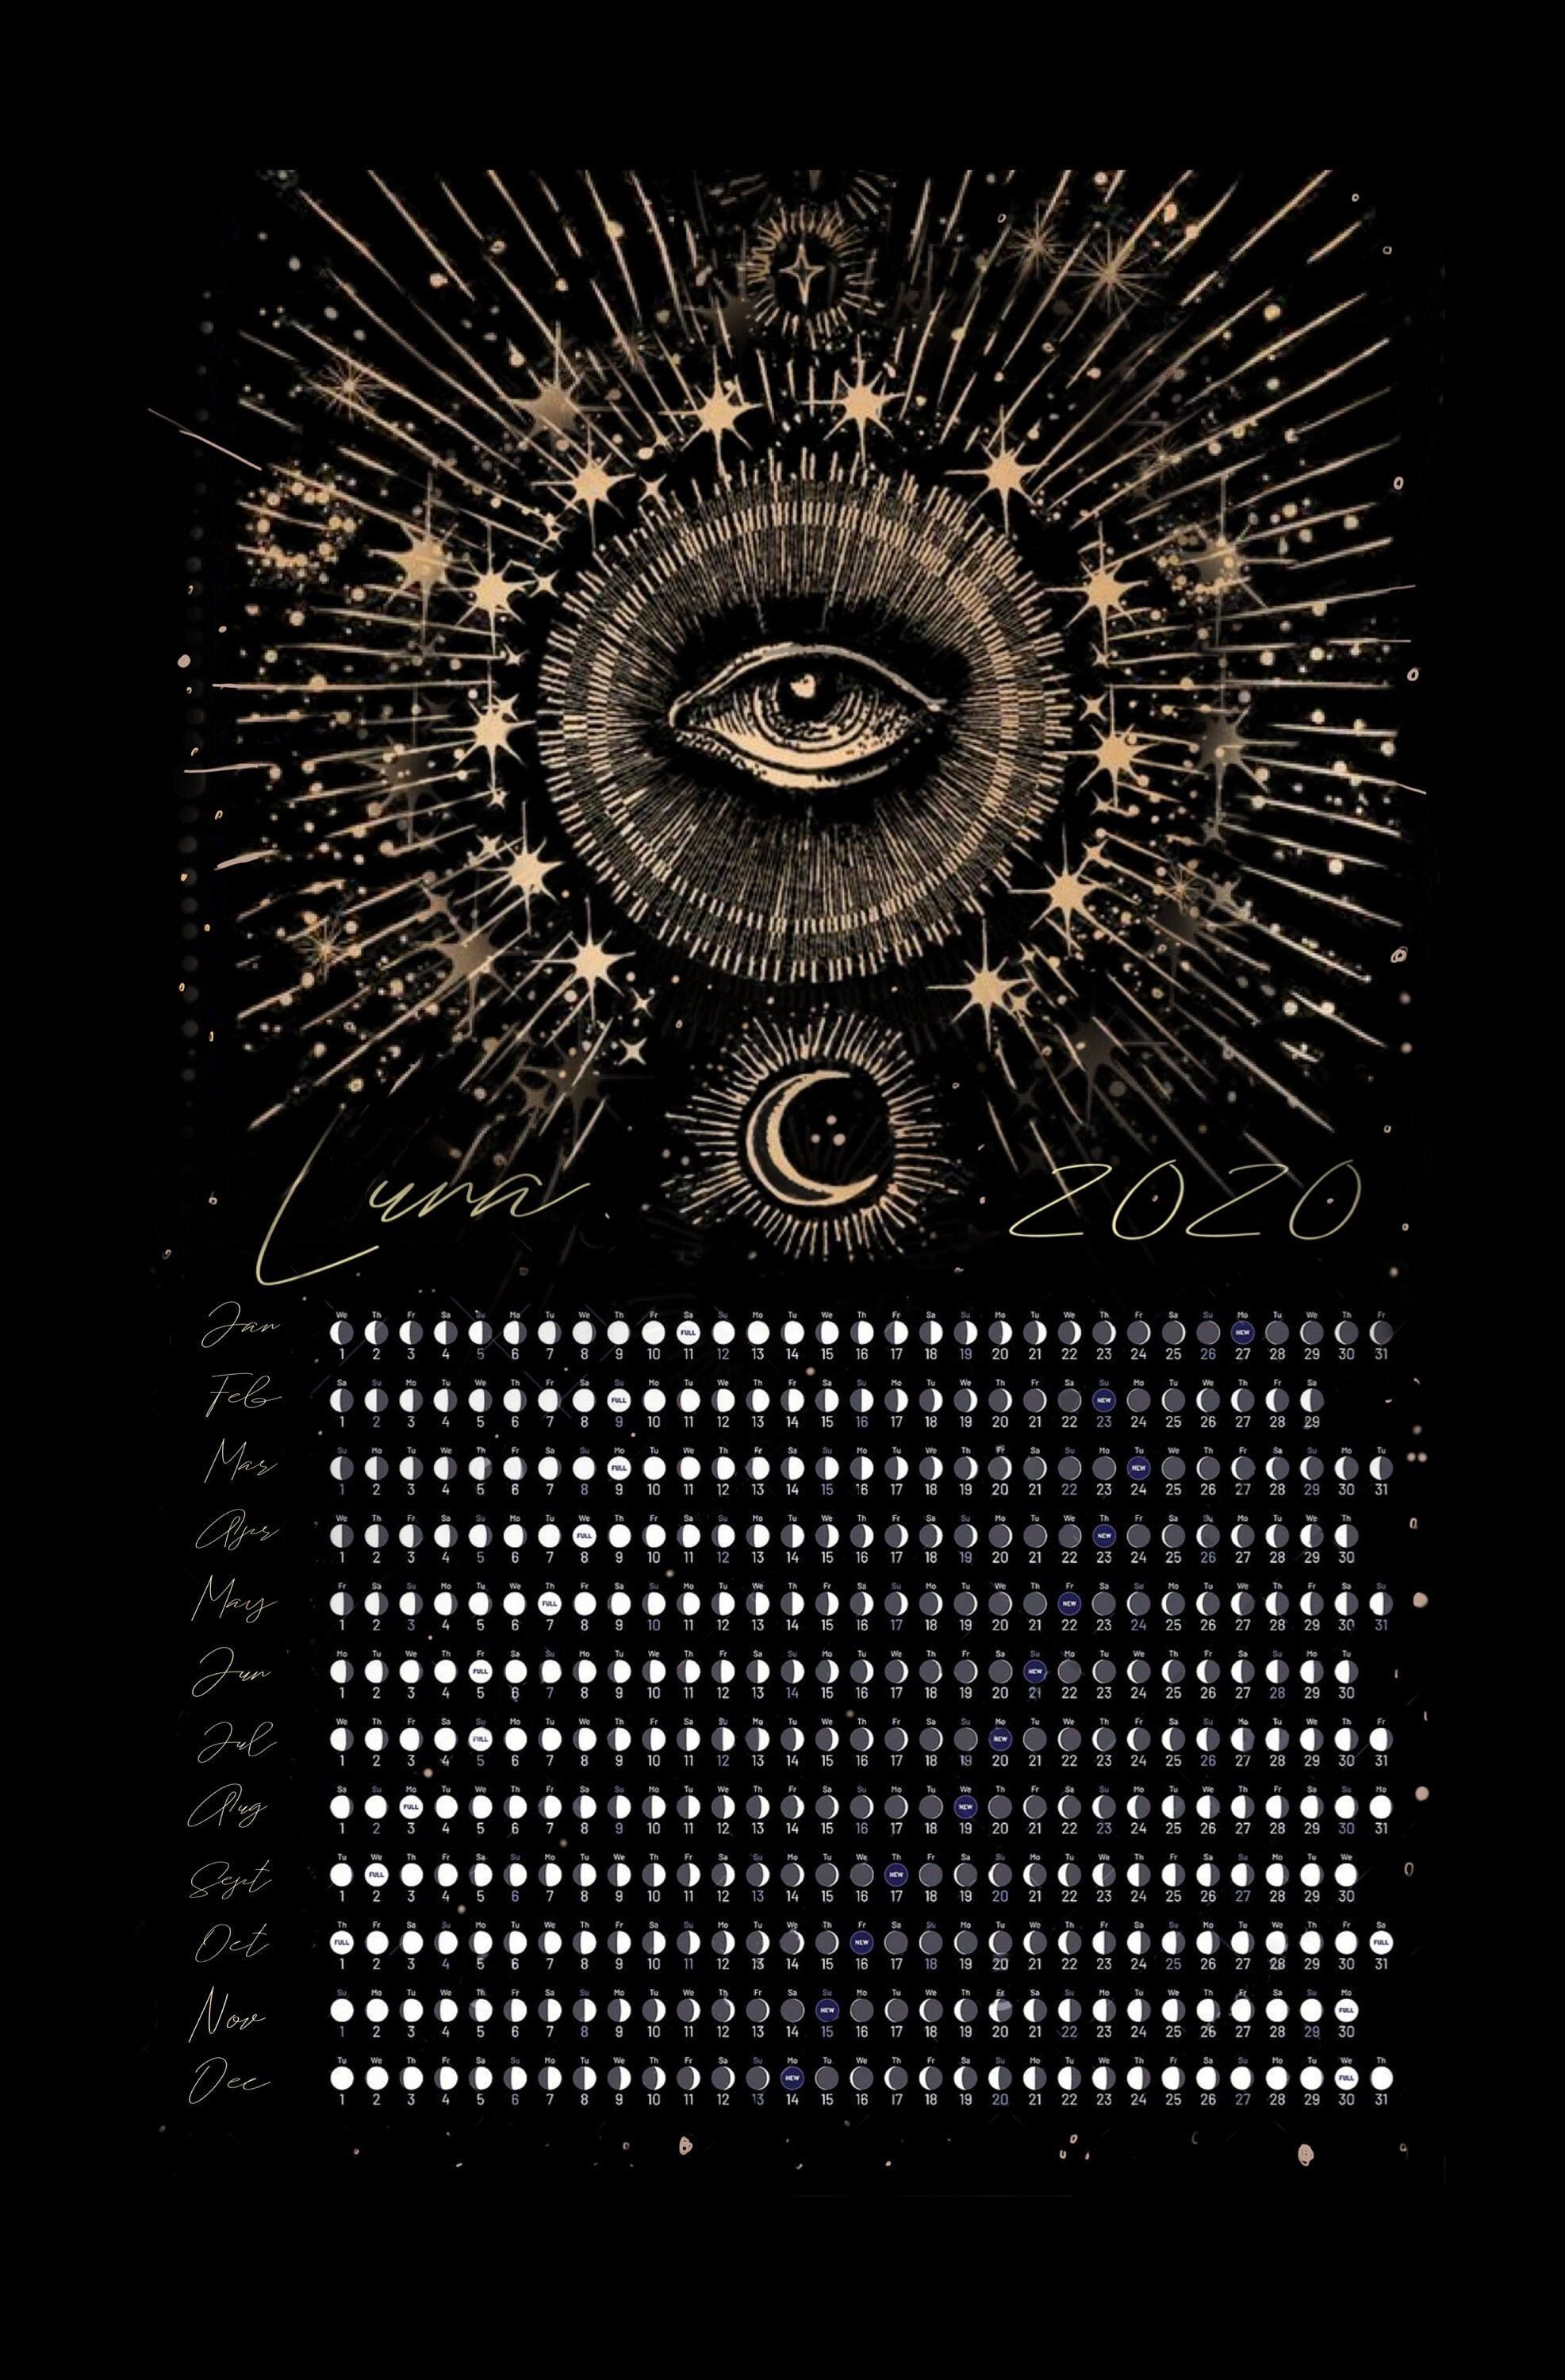 2020 Moon Phase Calendar 11X17 Poster (With images